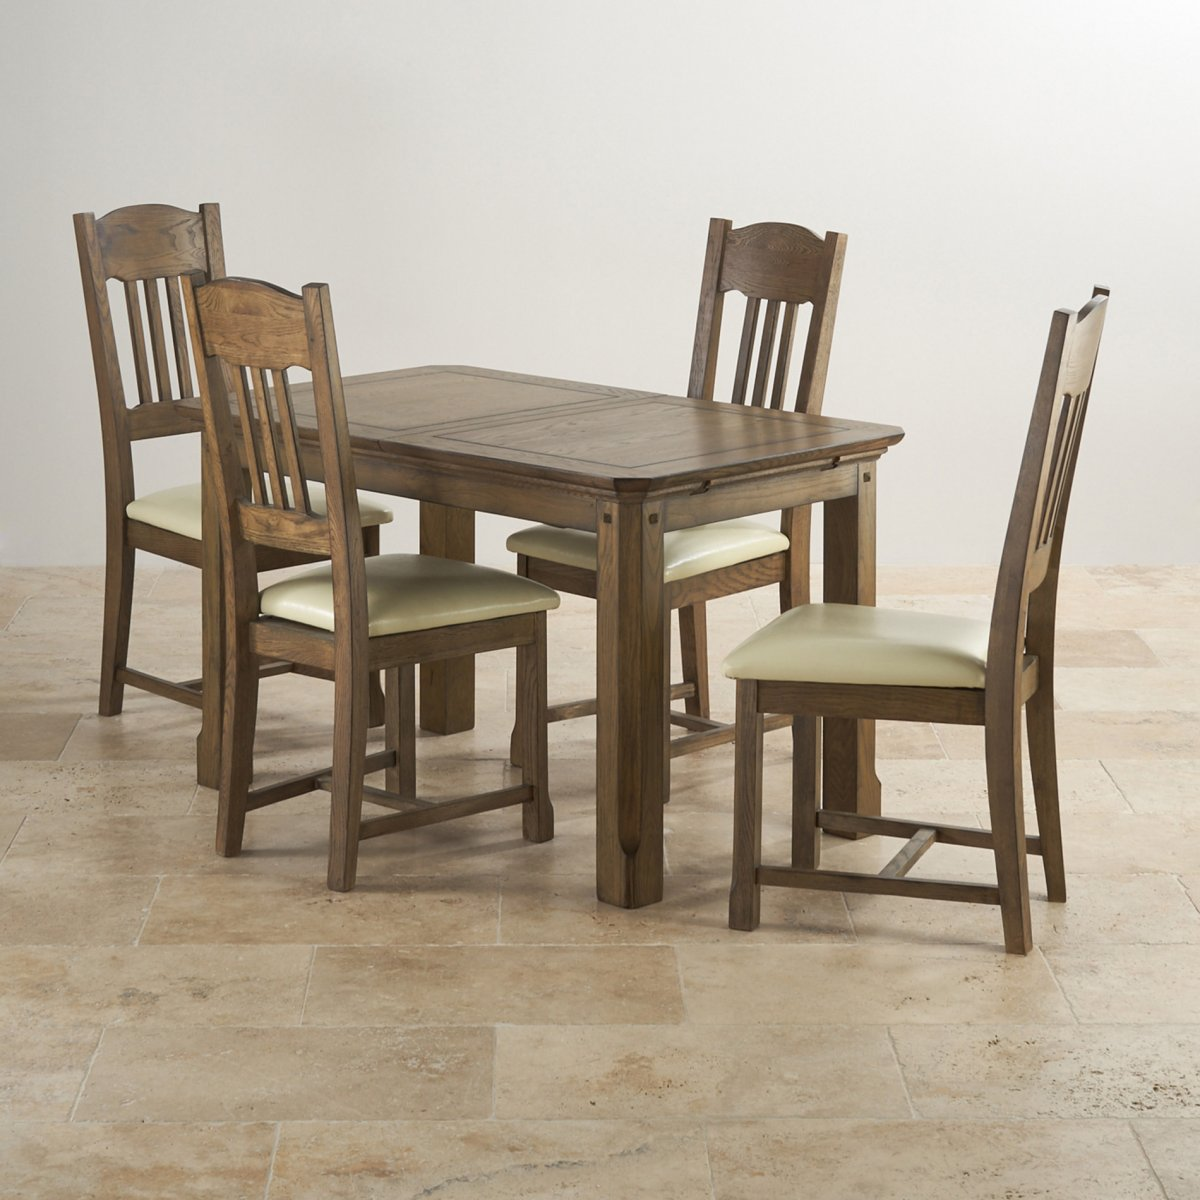 4 Dining Chairs Cheap: Manor House Extending Dining Set In Oak: Table + 4 Chairs